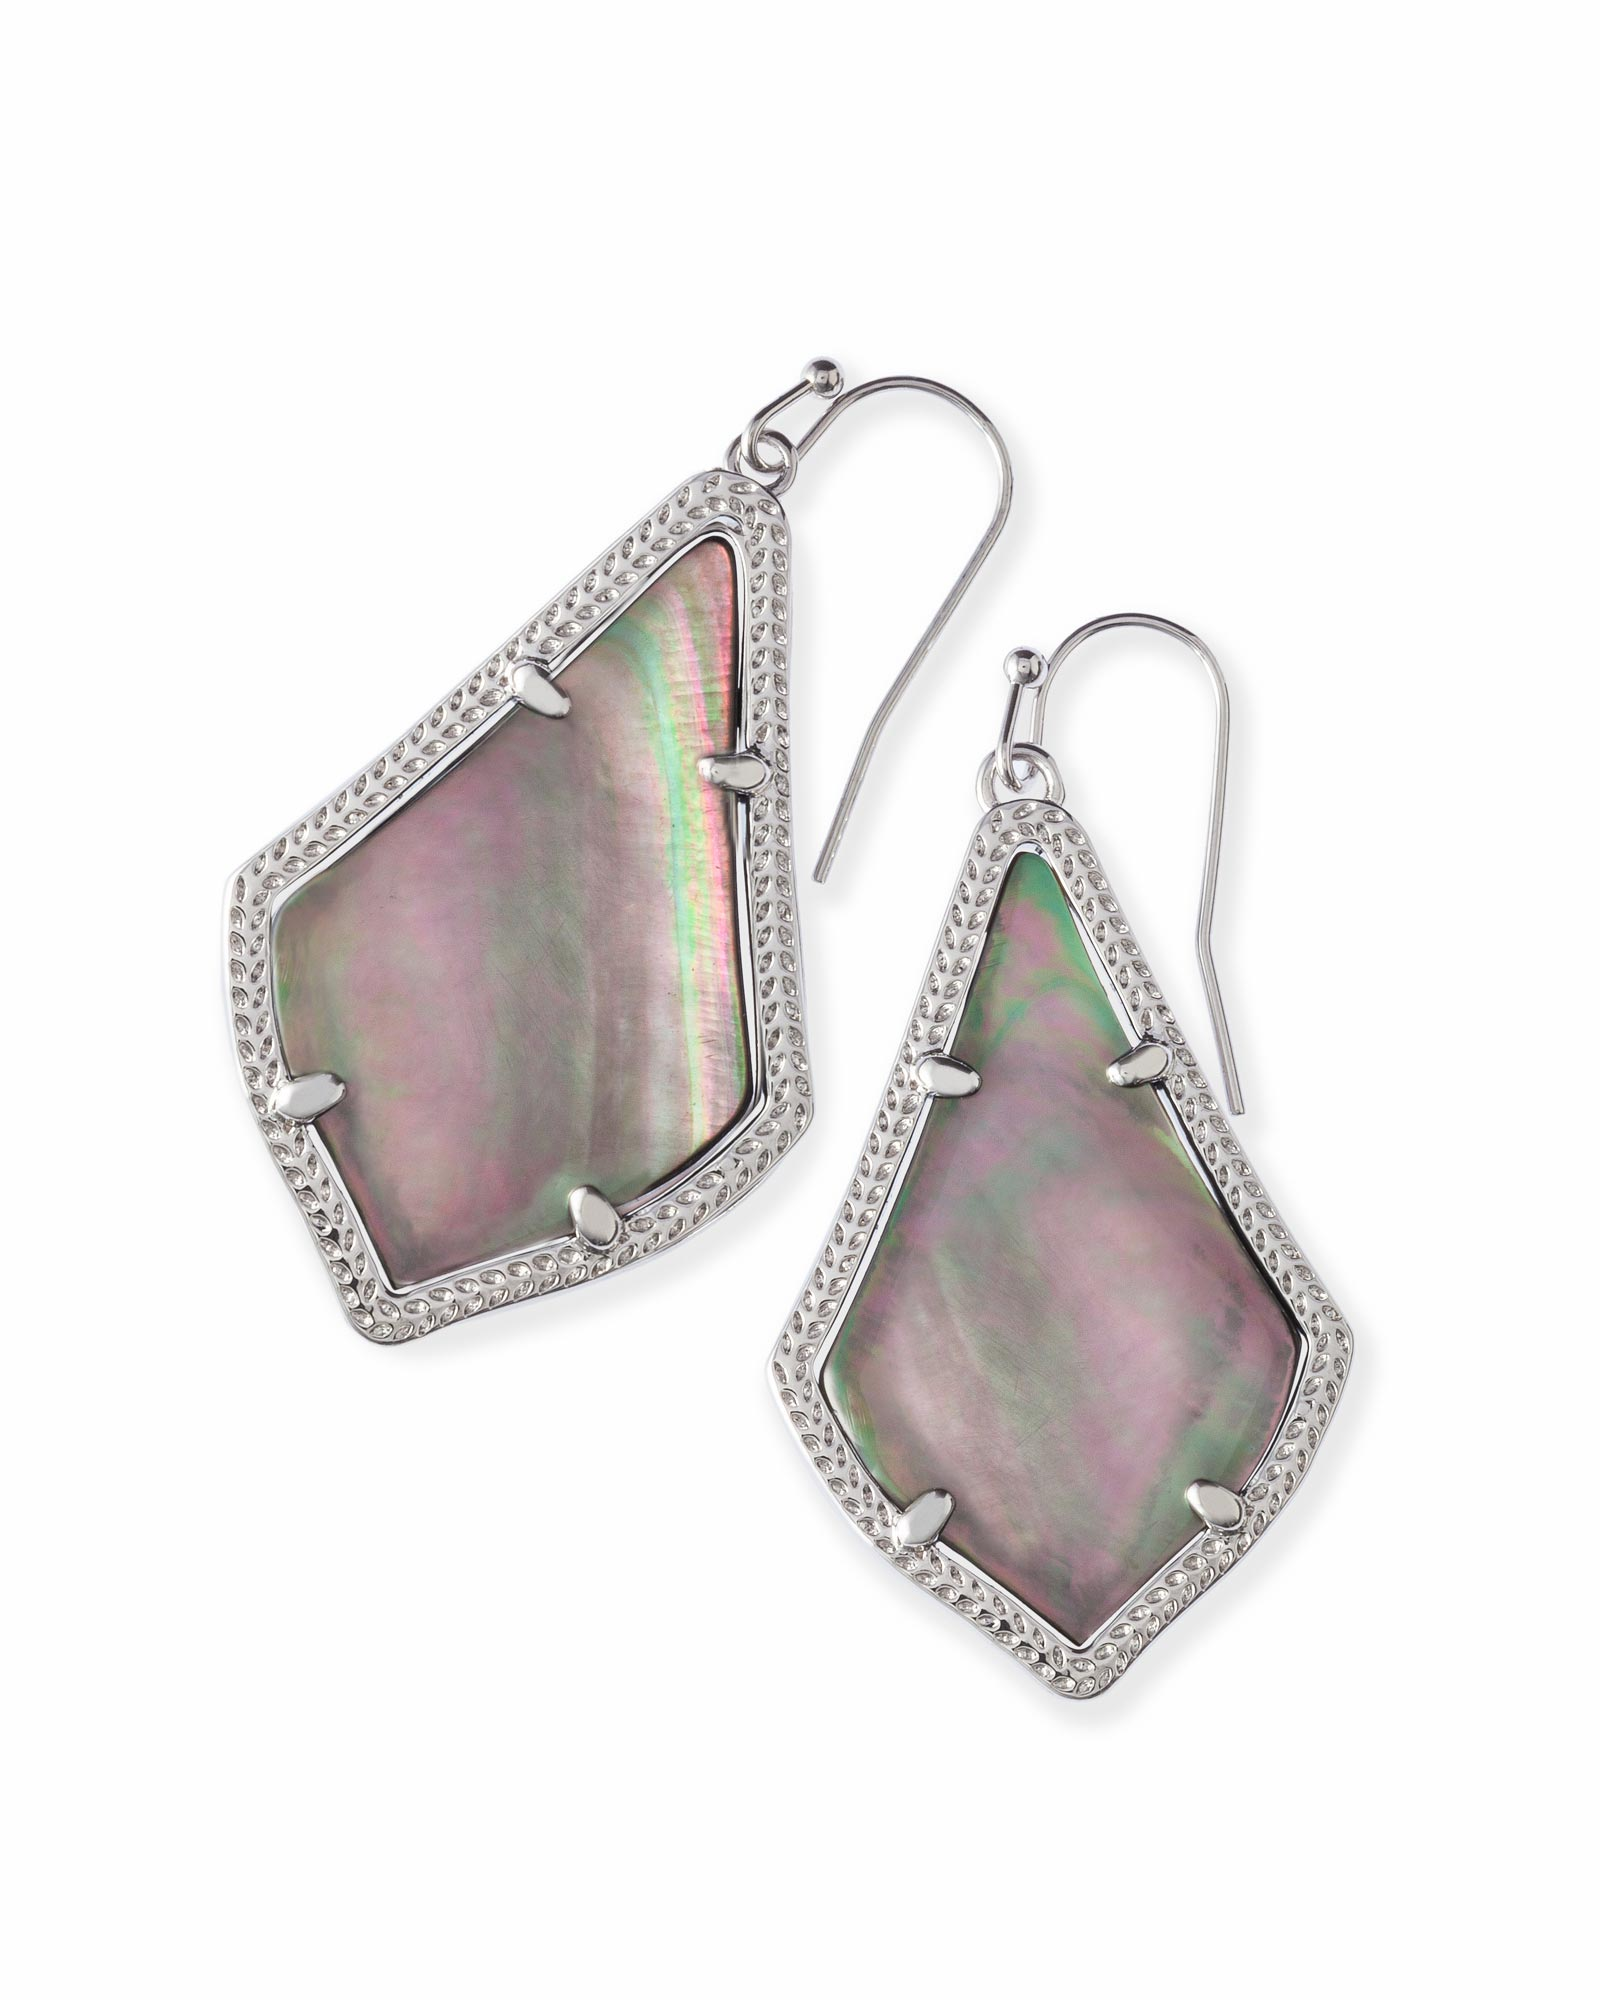 KENDRA SCOTT ALEX EARRINGS IN RHODIUM